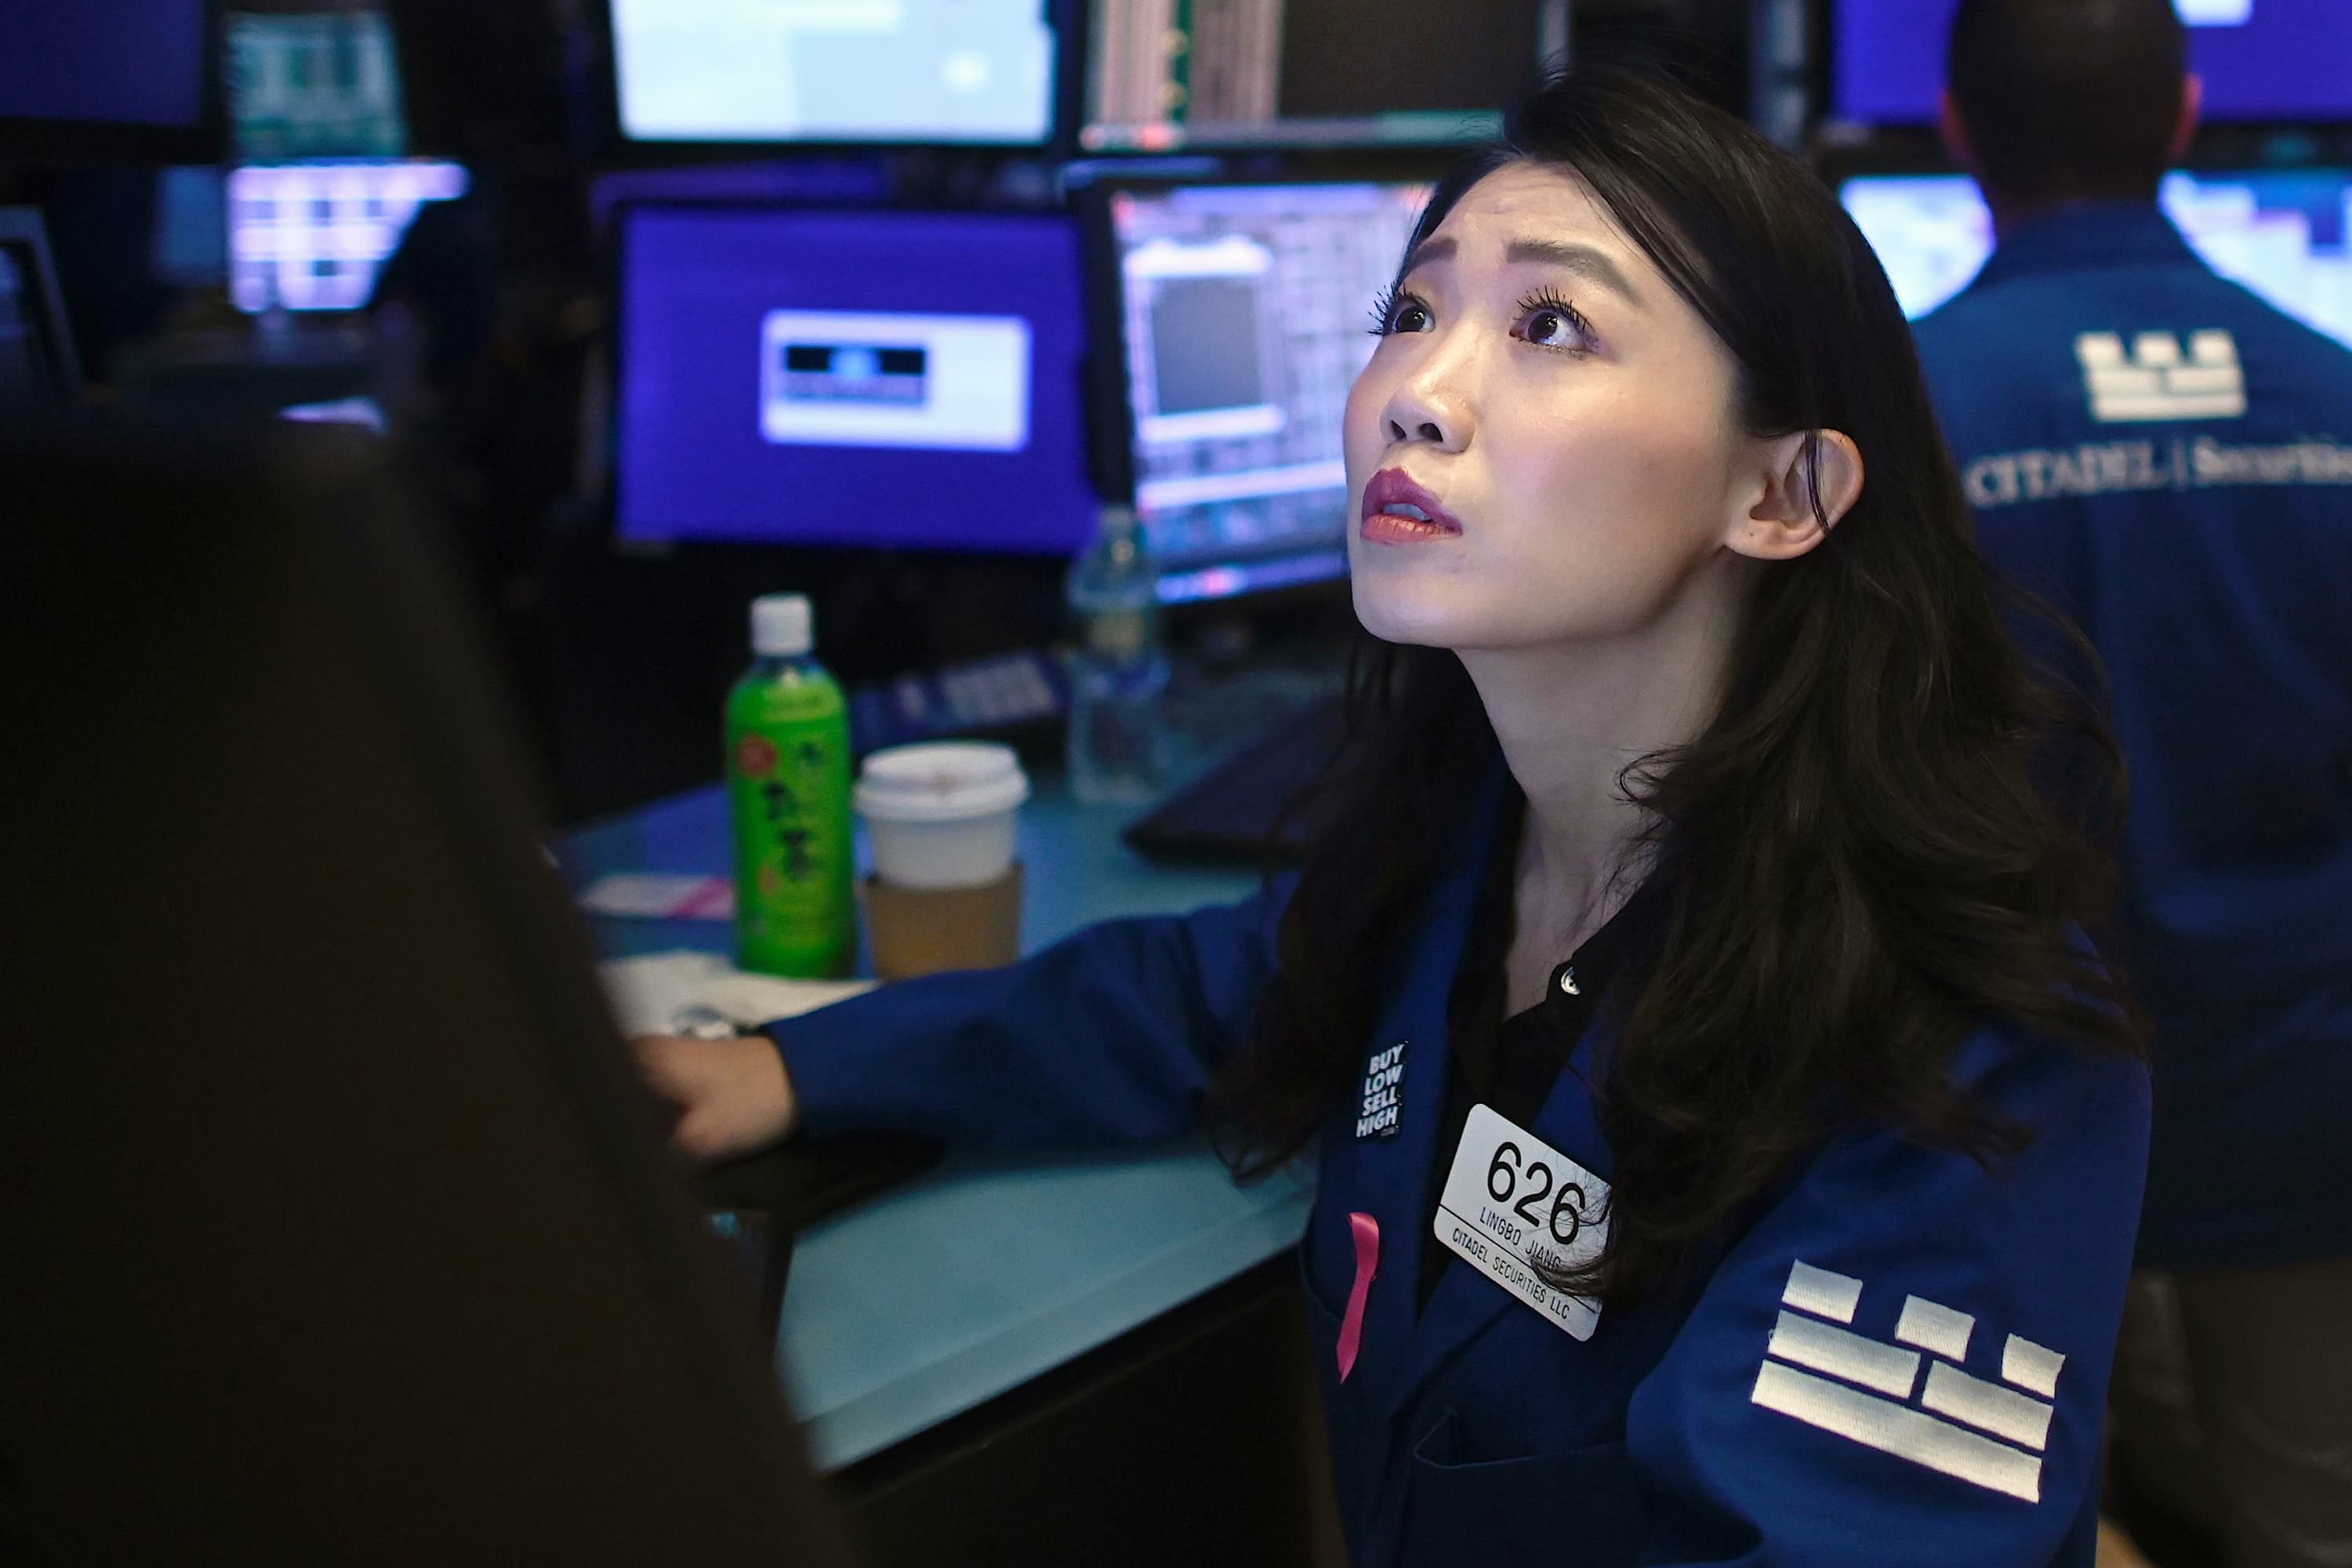 Falling profit margins raise some alarm: 'It can be a precursor to layoffs and a recession'